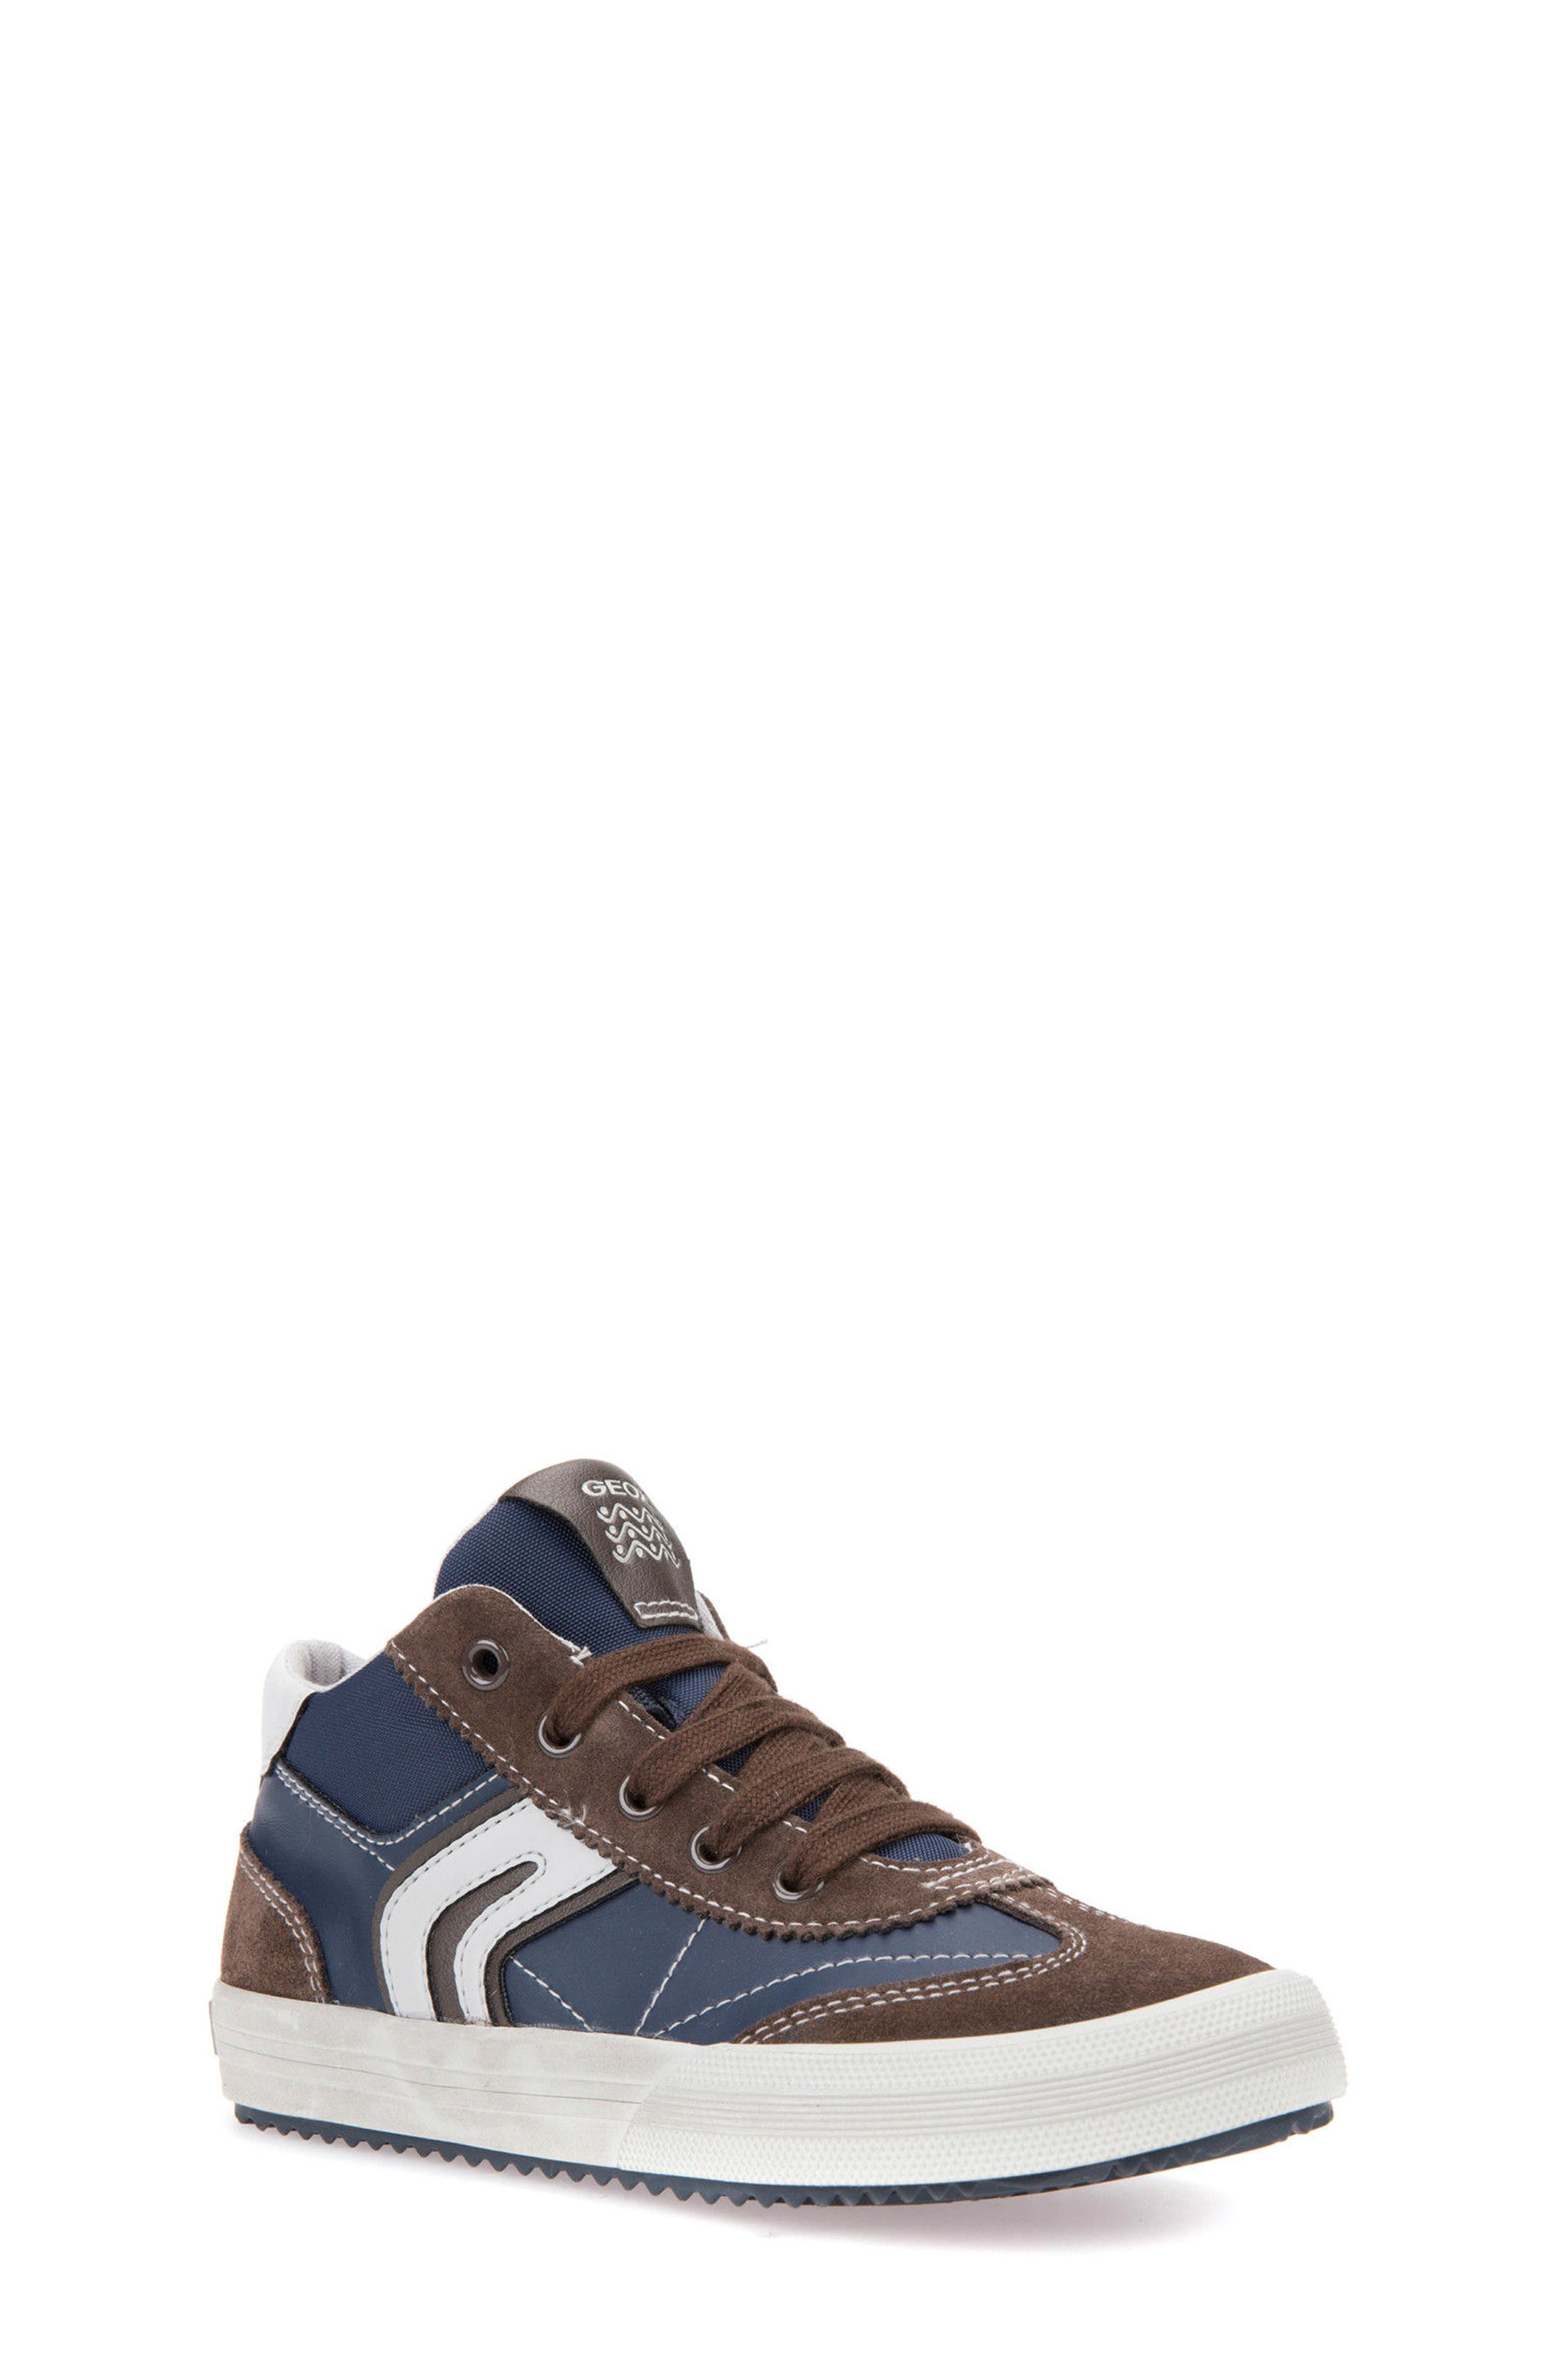 Alonisso Mid Top Sneaker,                         Main,                         color, Navy/ Brown